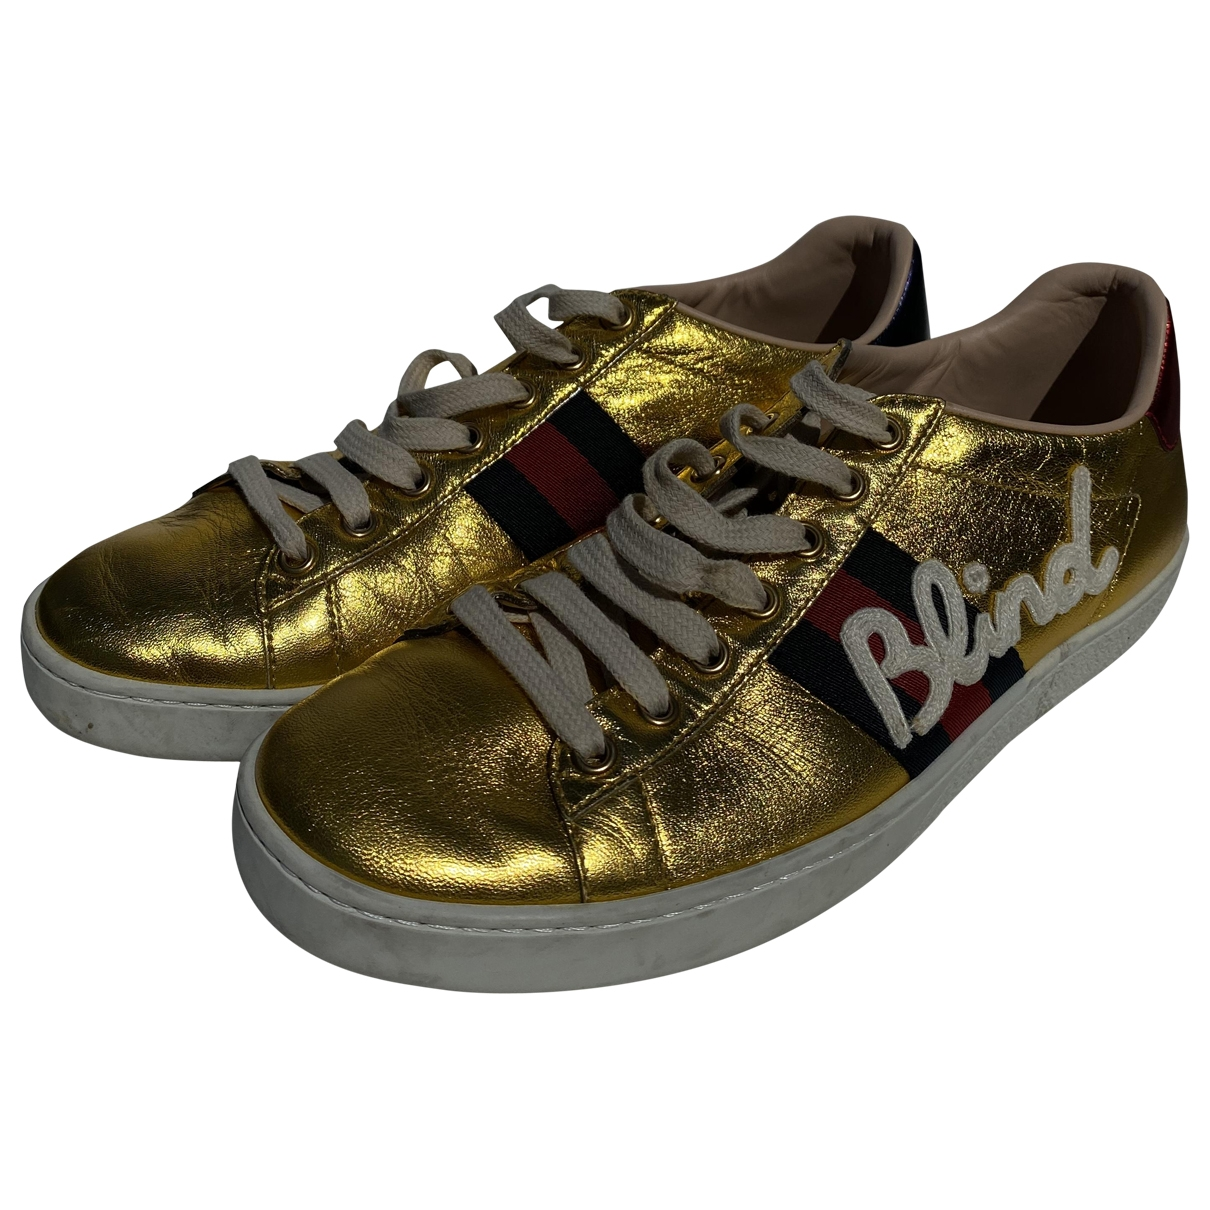 Gucci Ace Gold Leather Trainers for Women 38.5 EU